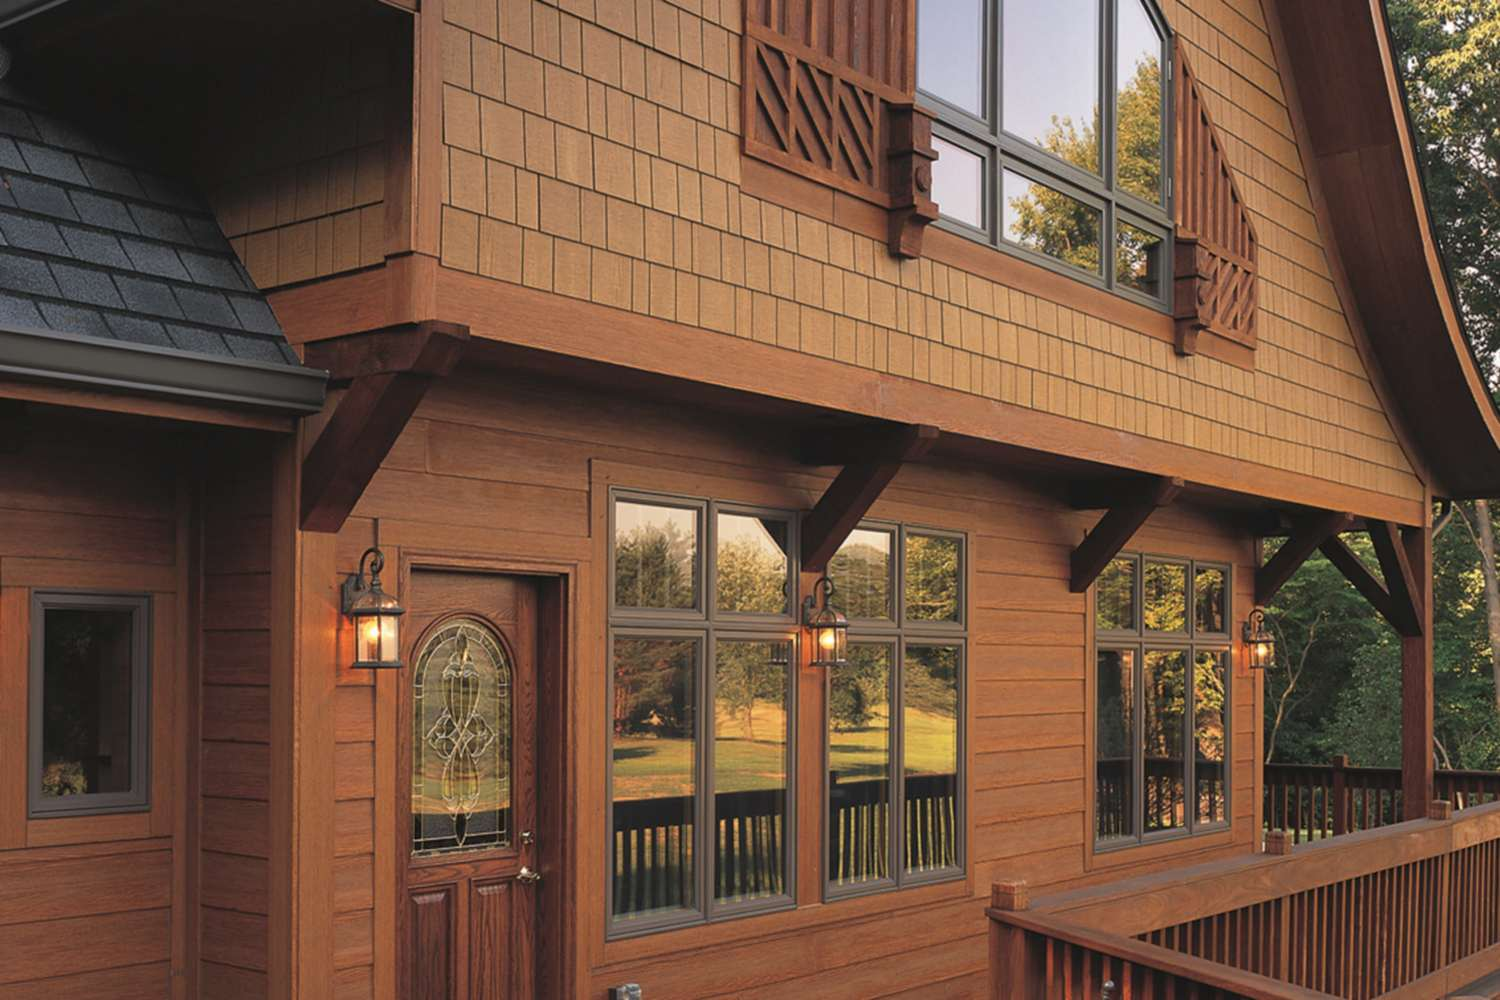 House Siding Options - From Plywood to Vinyl